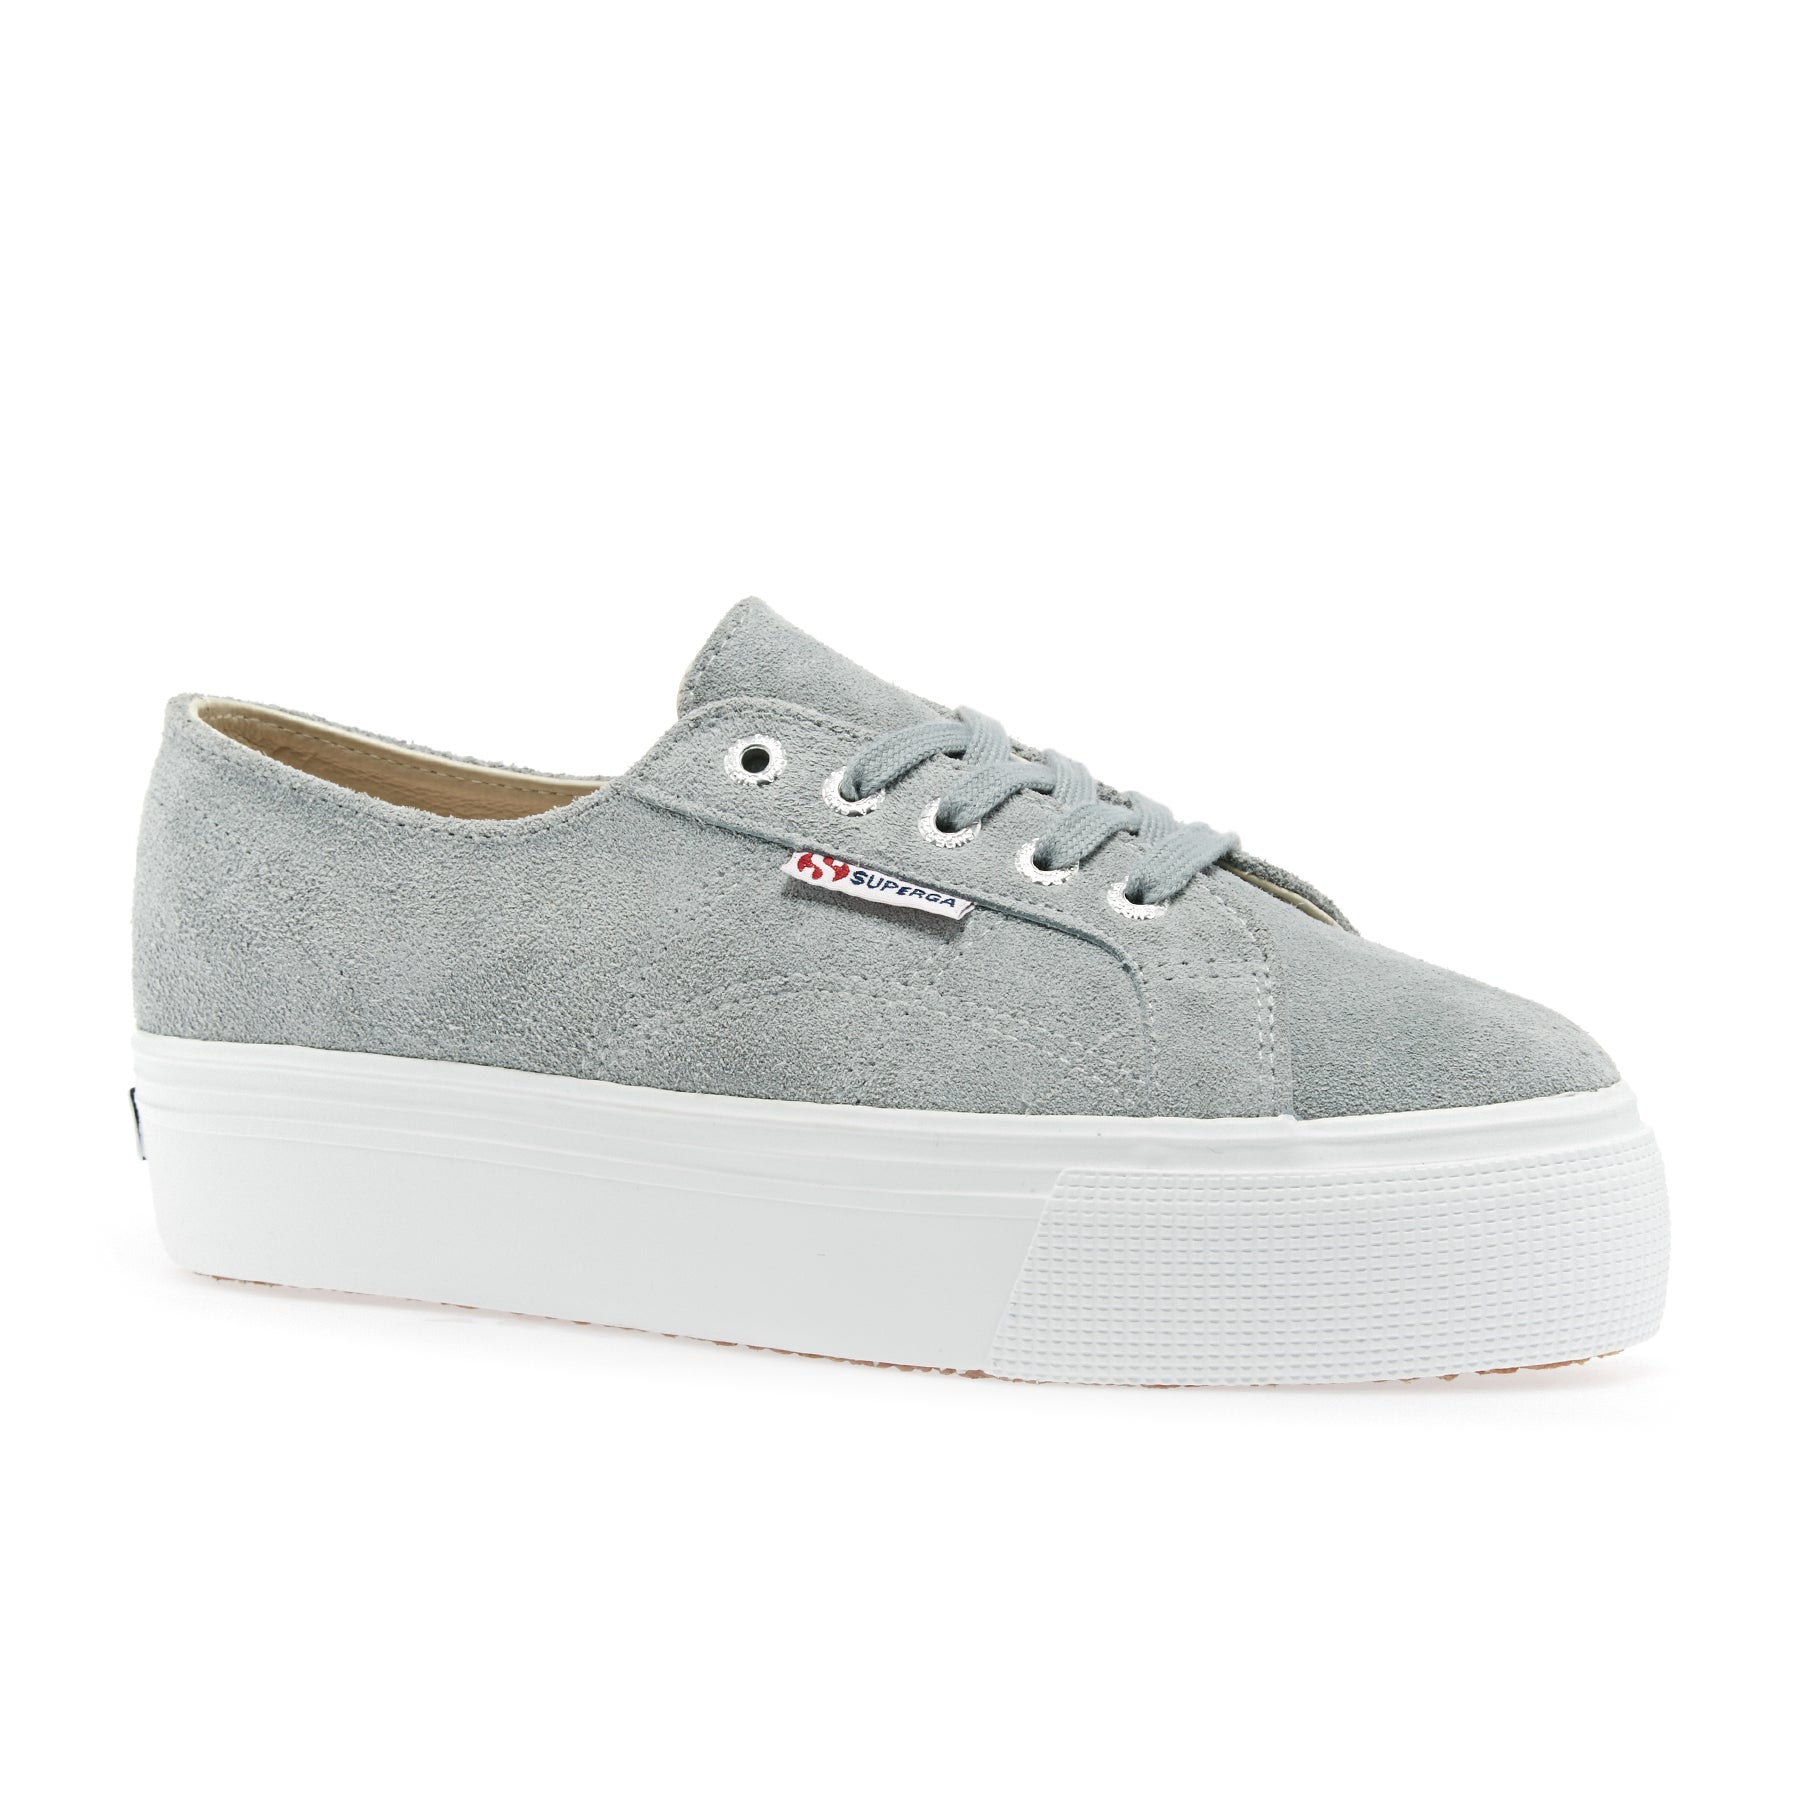 Superga 2790 Suew Womens Shoes - Lt Grey